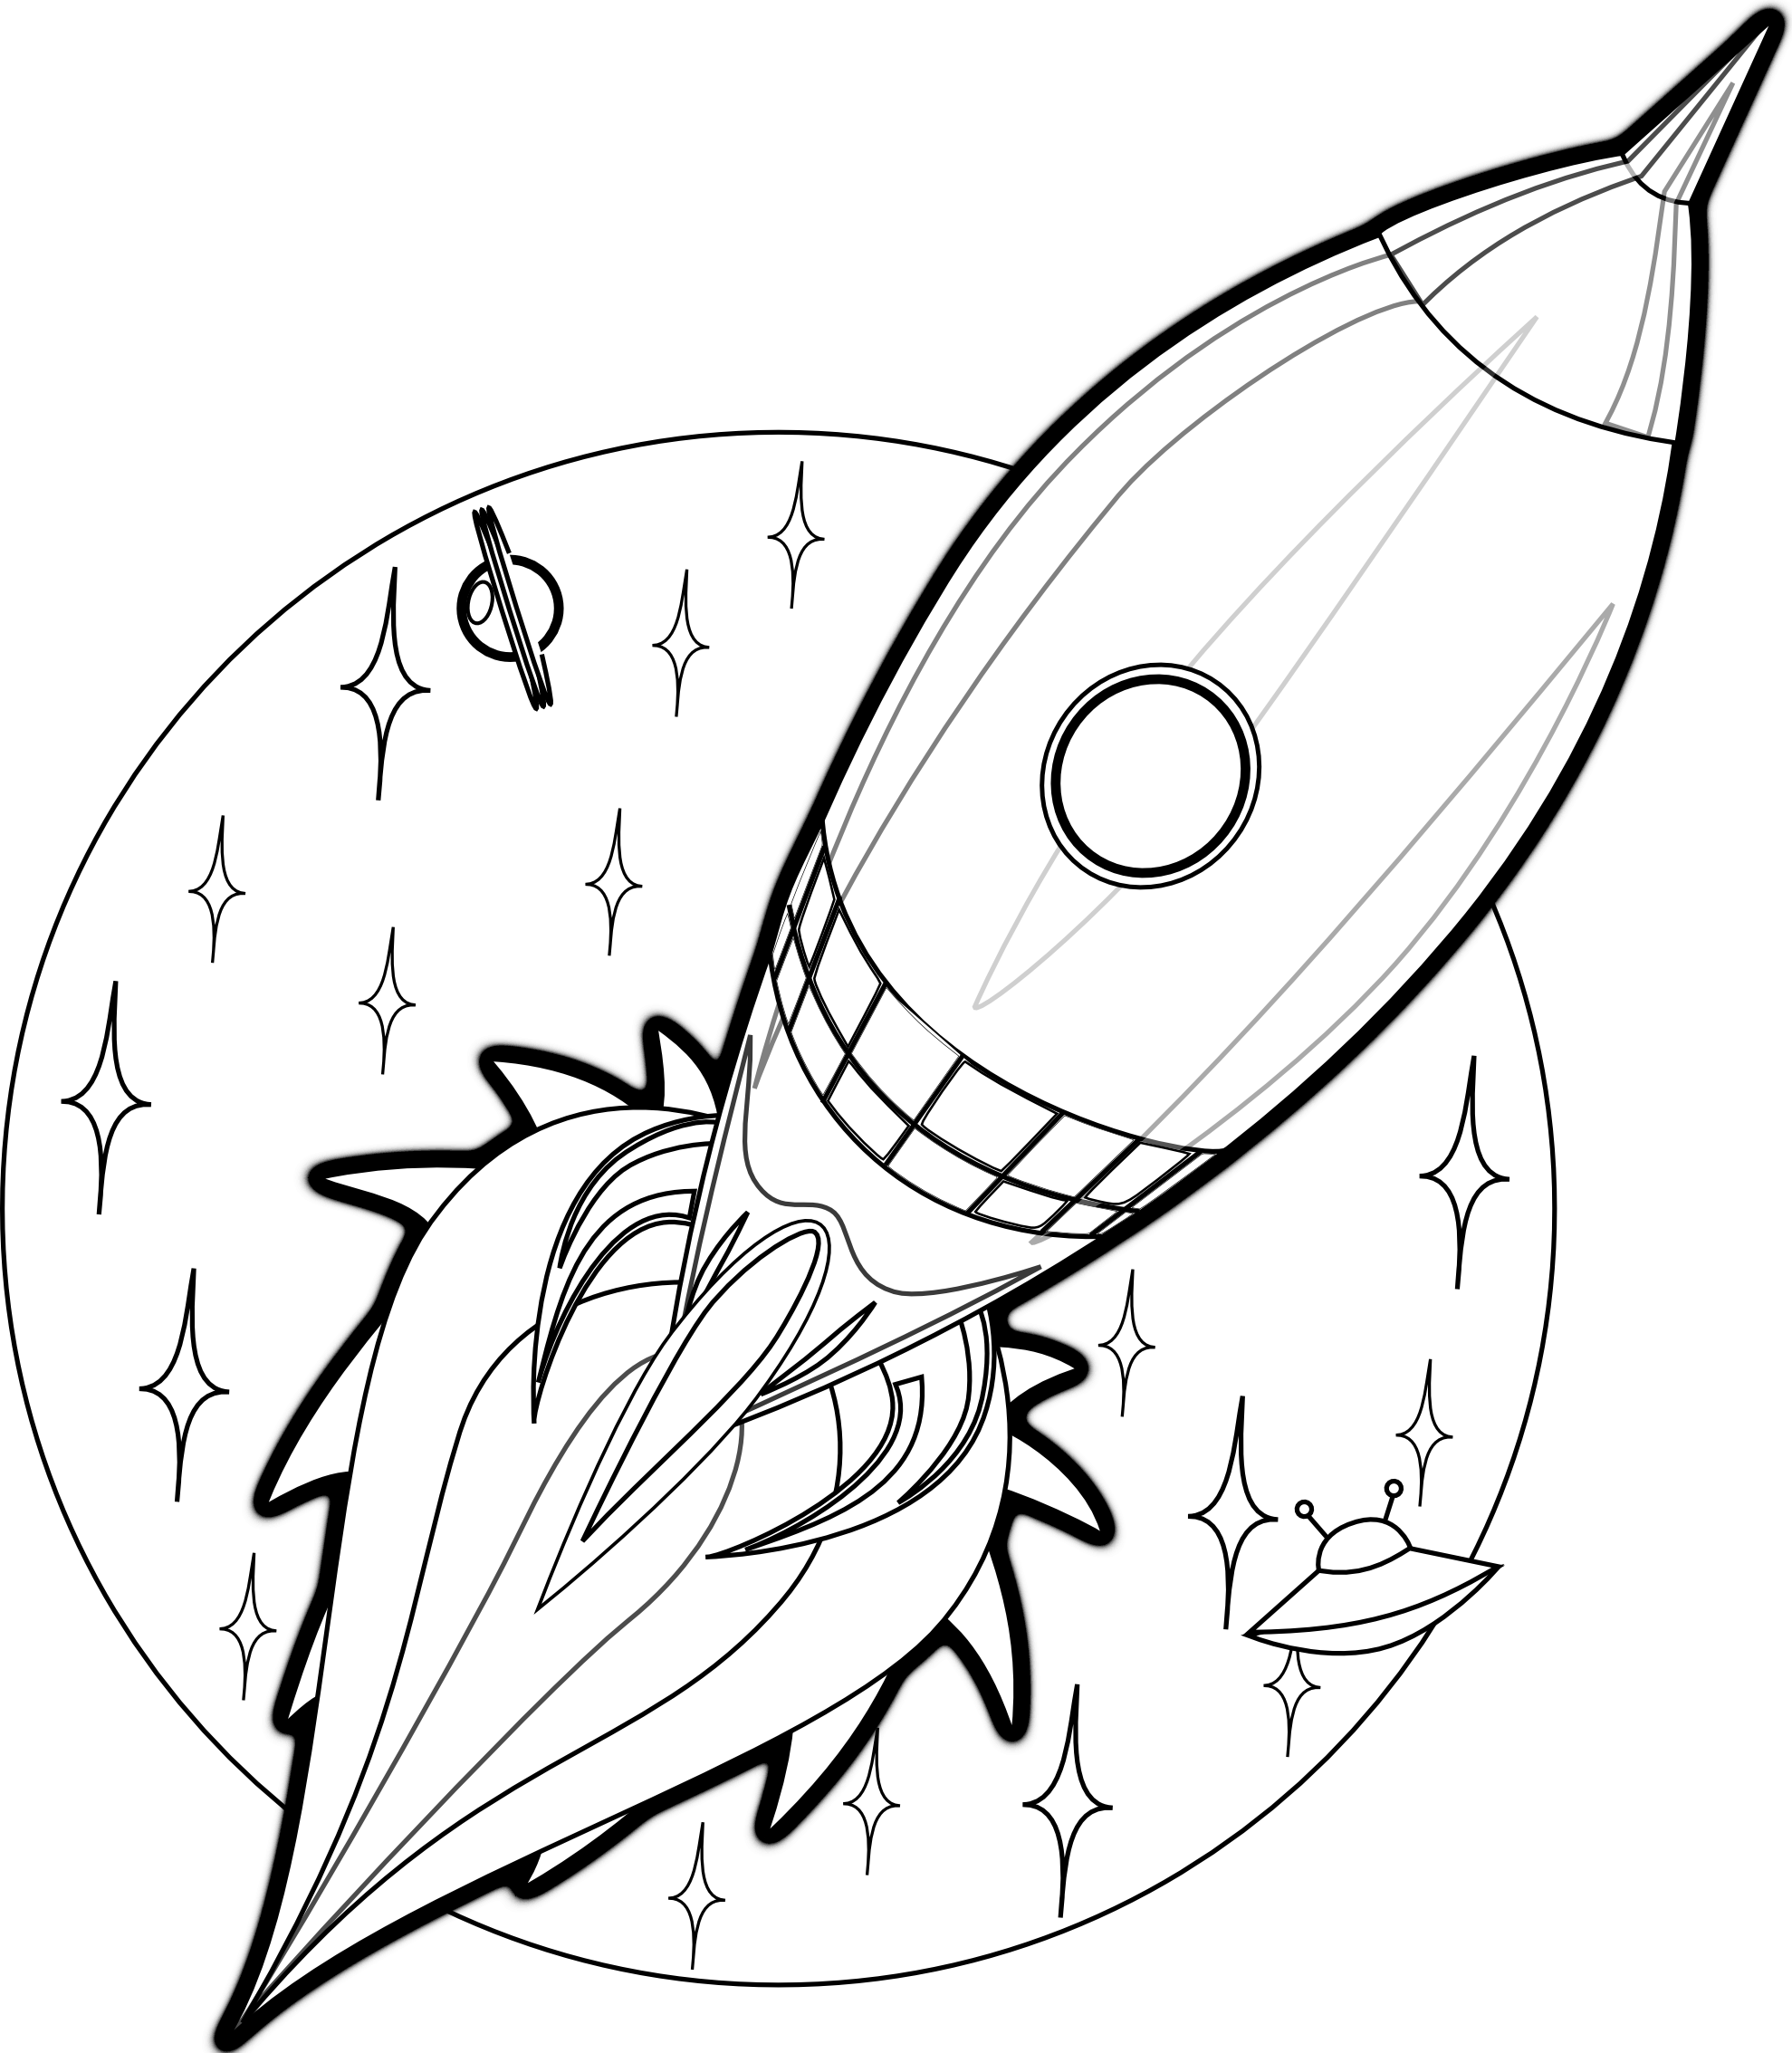 Free Printable Rocket Ship Coloring Pages For Kids Space Coloring Pages Printable Rocket Ship Coloring Pages For Teenagers